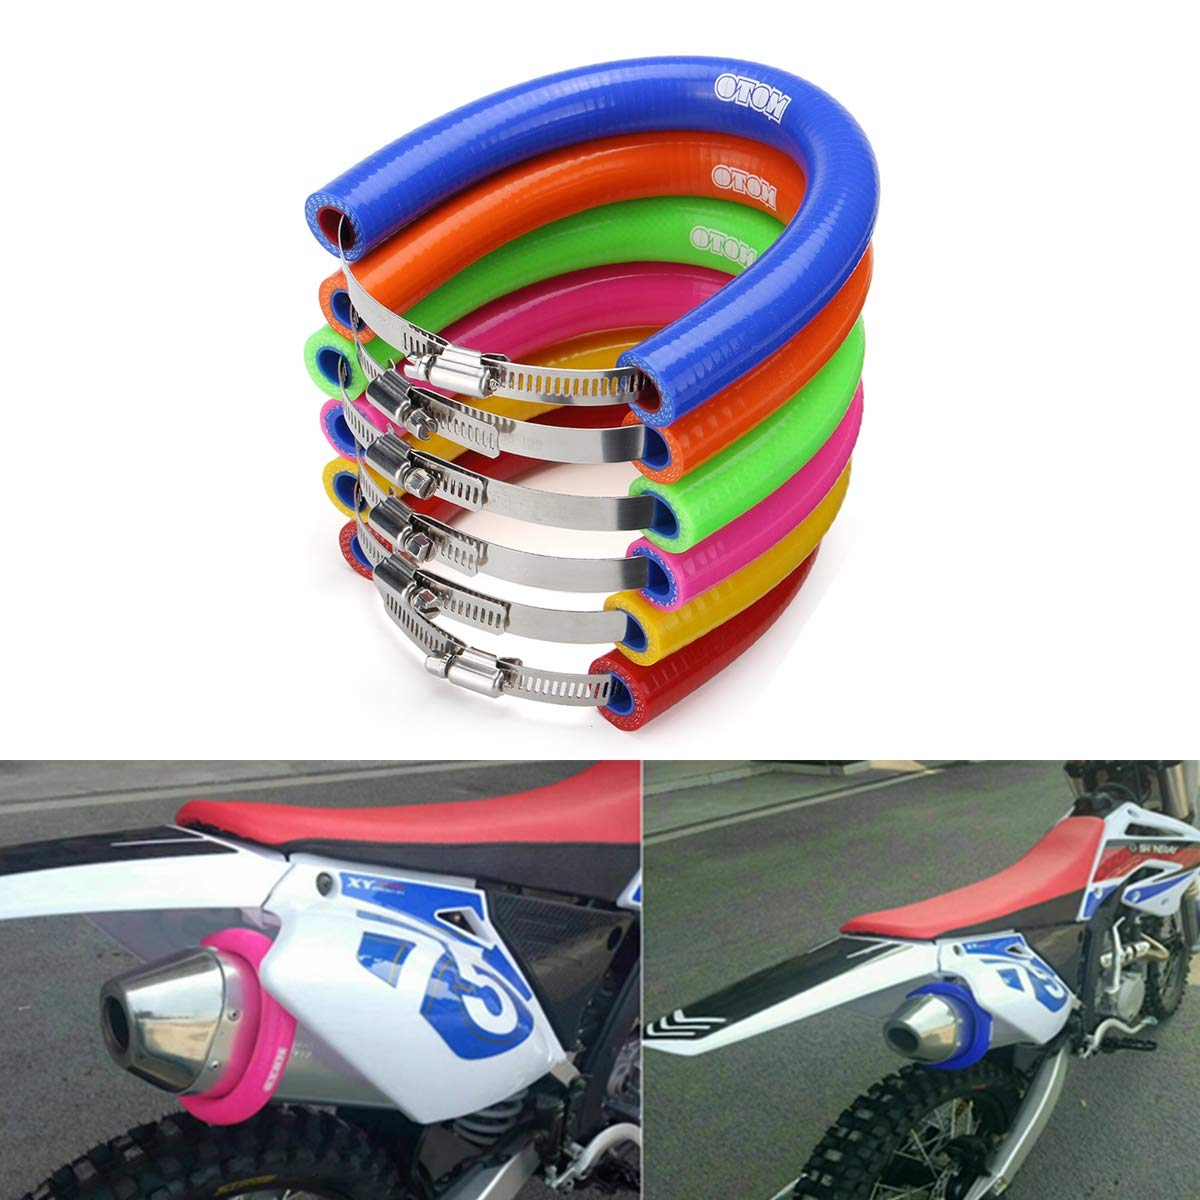 Wooya Universal Motorcycle Exhaust Muffler Protector Can Cover Guard For Ktm Exc Sxf 250-525-Blue